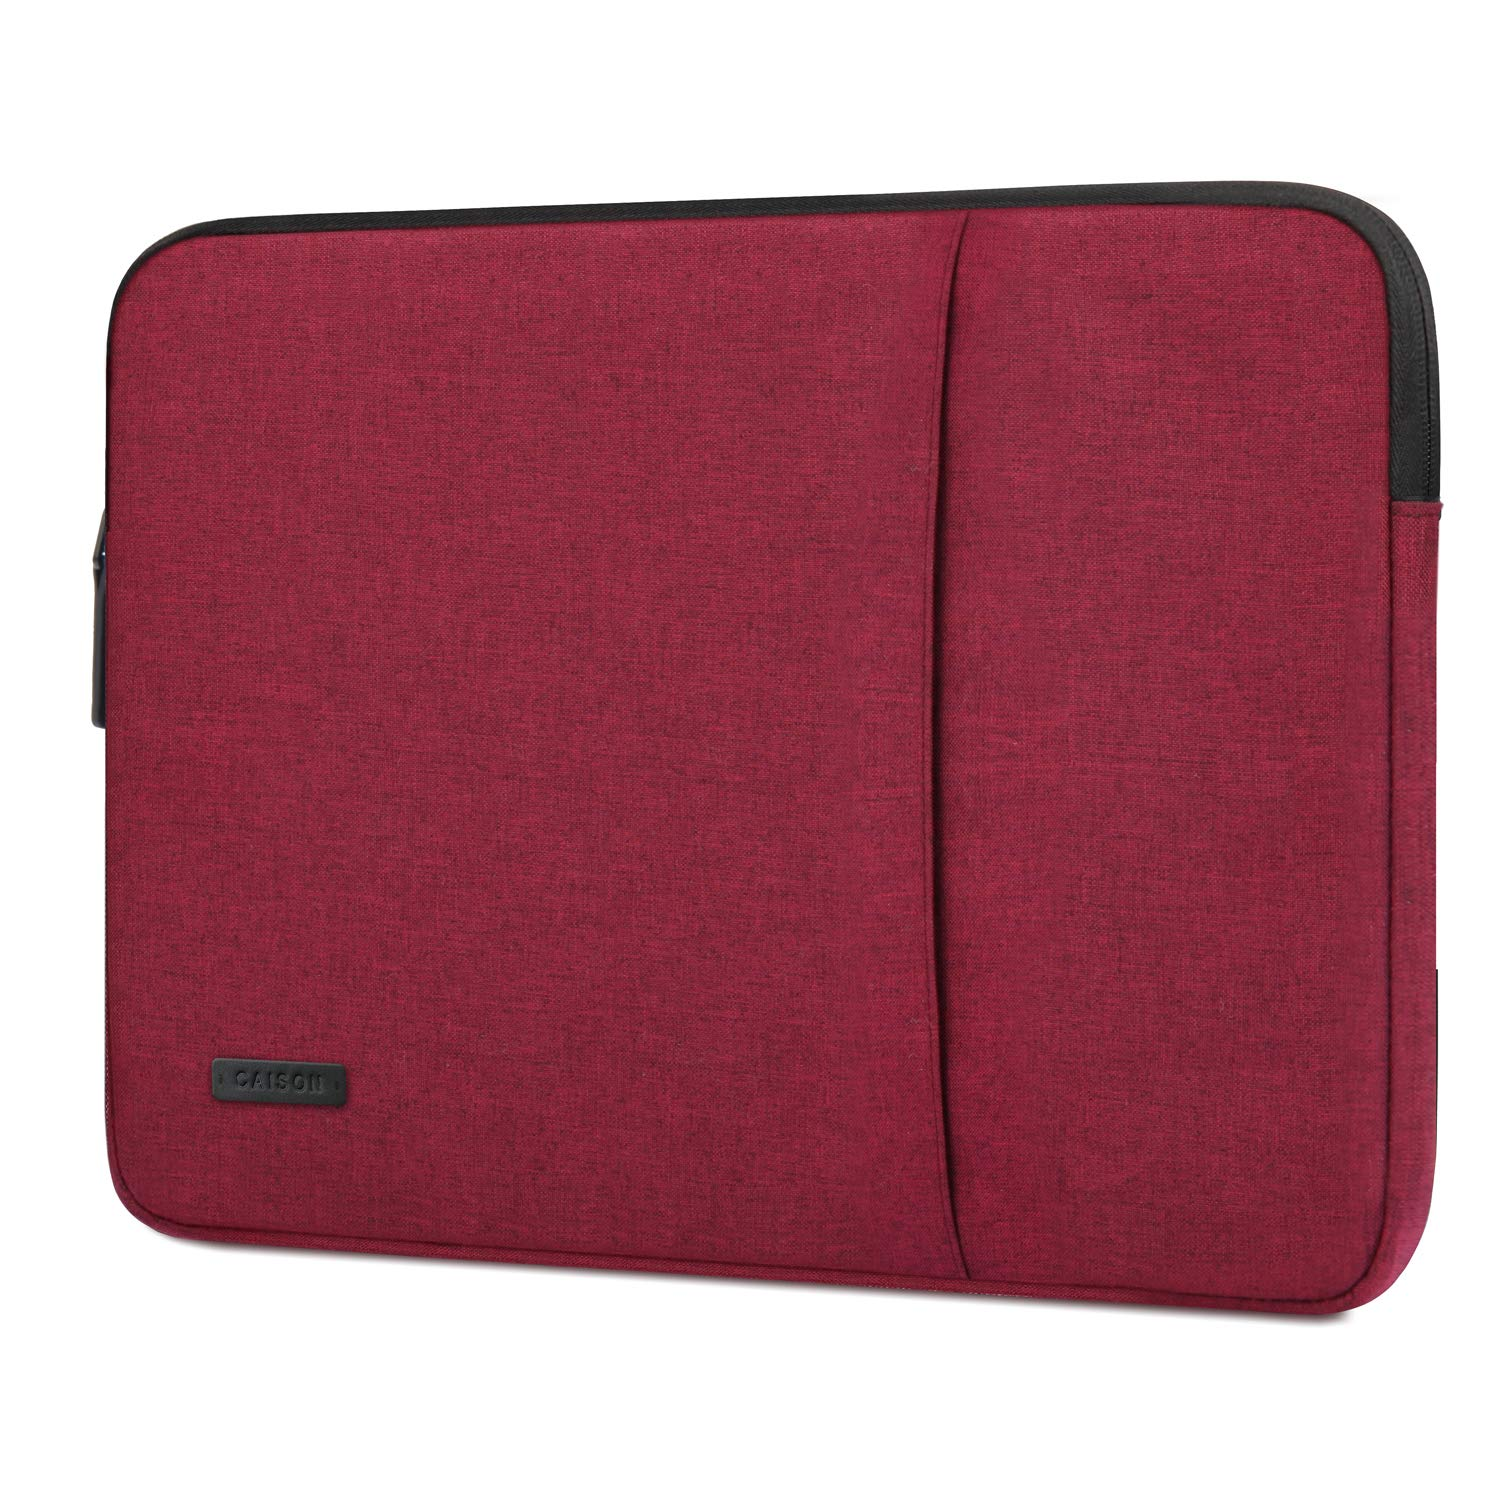 CAISON Laptop Sleeve Ultrabook Case for 13,5 inch Microsoft Surface Book 2 / Old 13 inch MacBook Air 2009-2017 /HP Pavilion X360 14/14 inch Lenovo ...